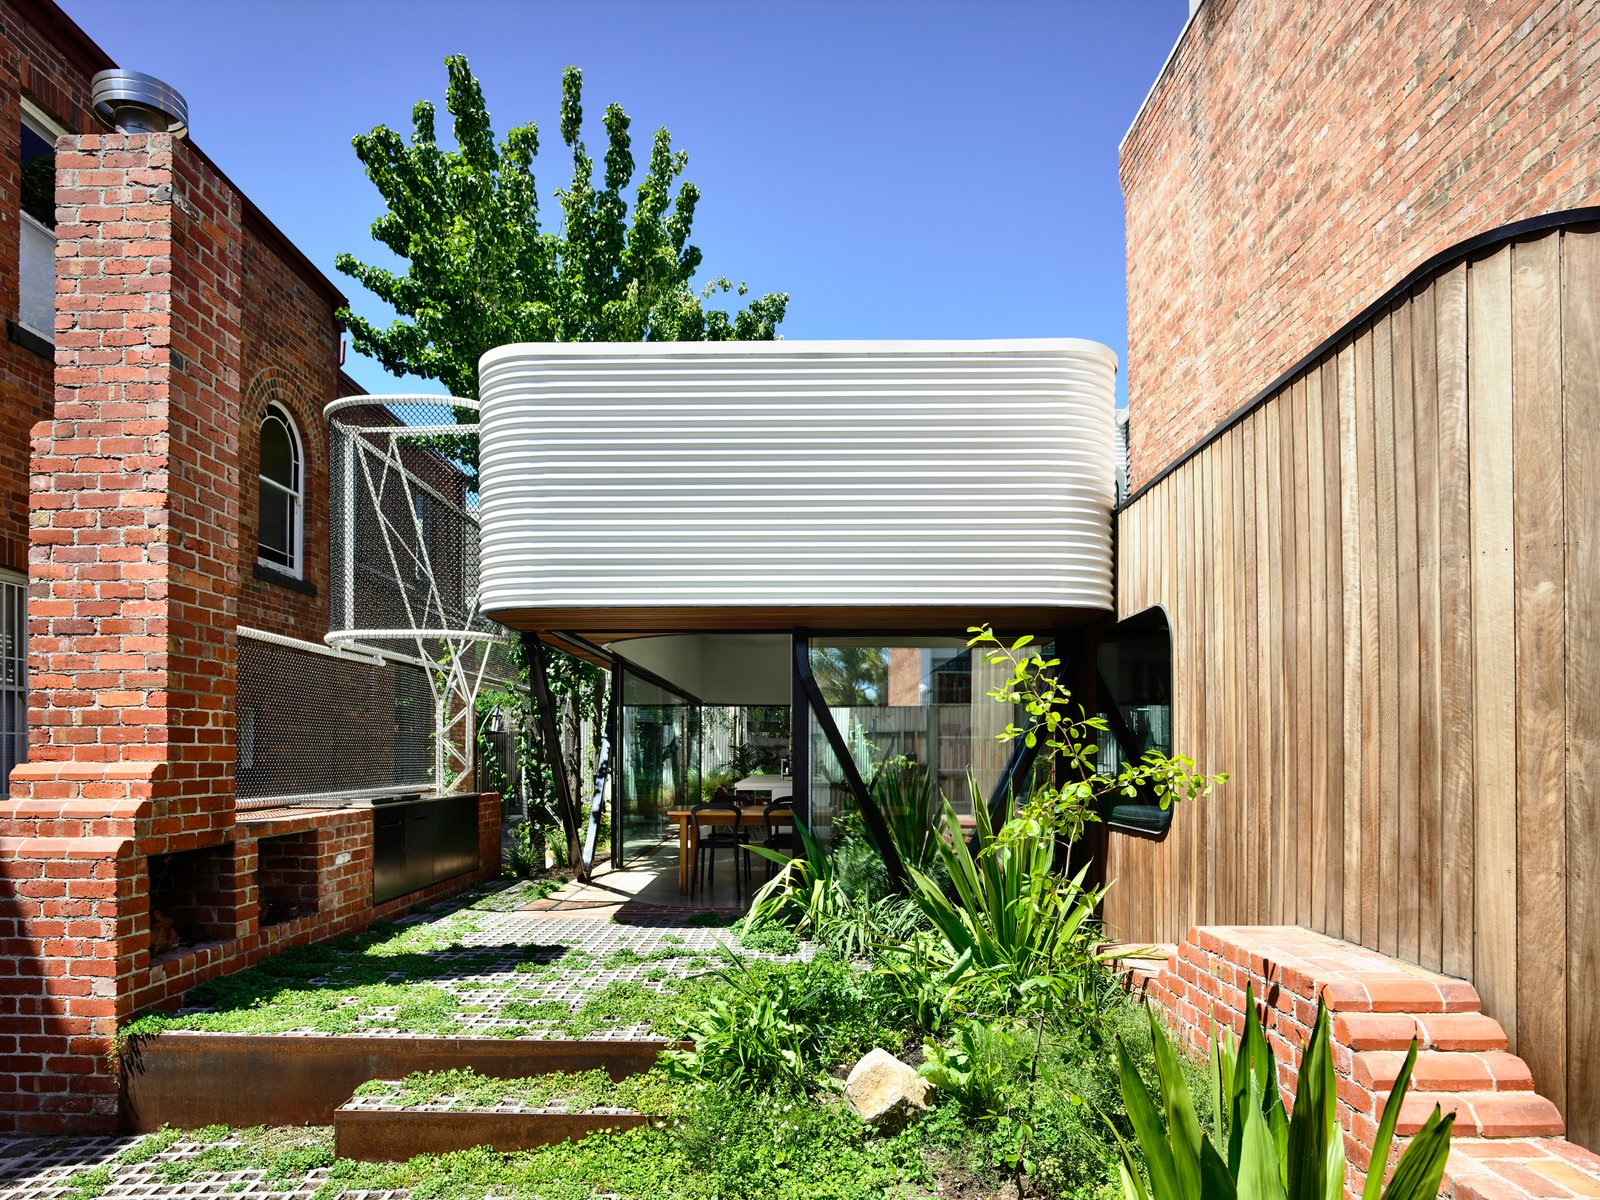 An Inventive Melbourne Remodel Greets the Street With a New Garden